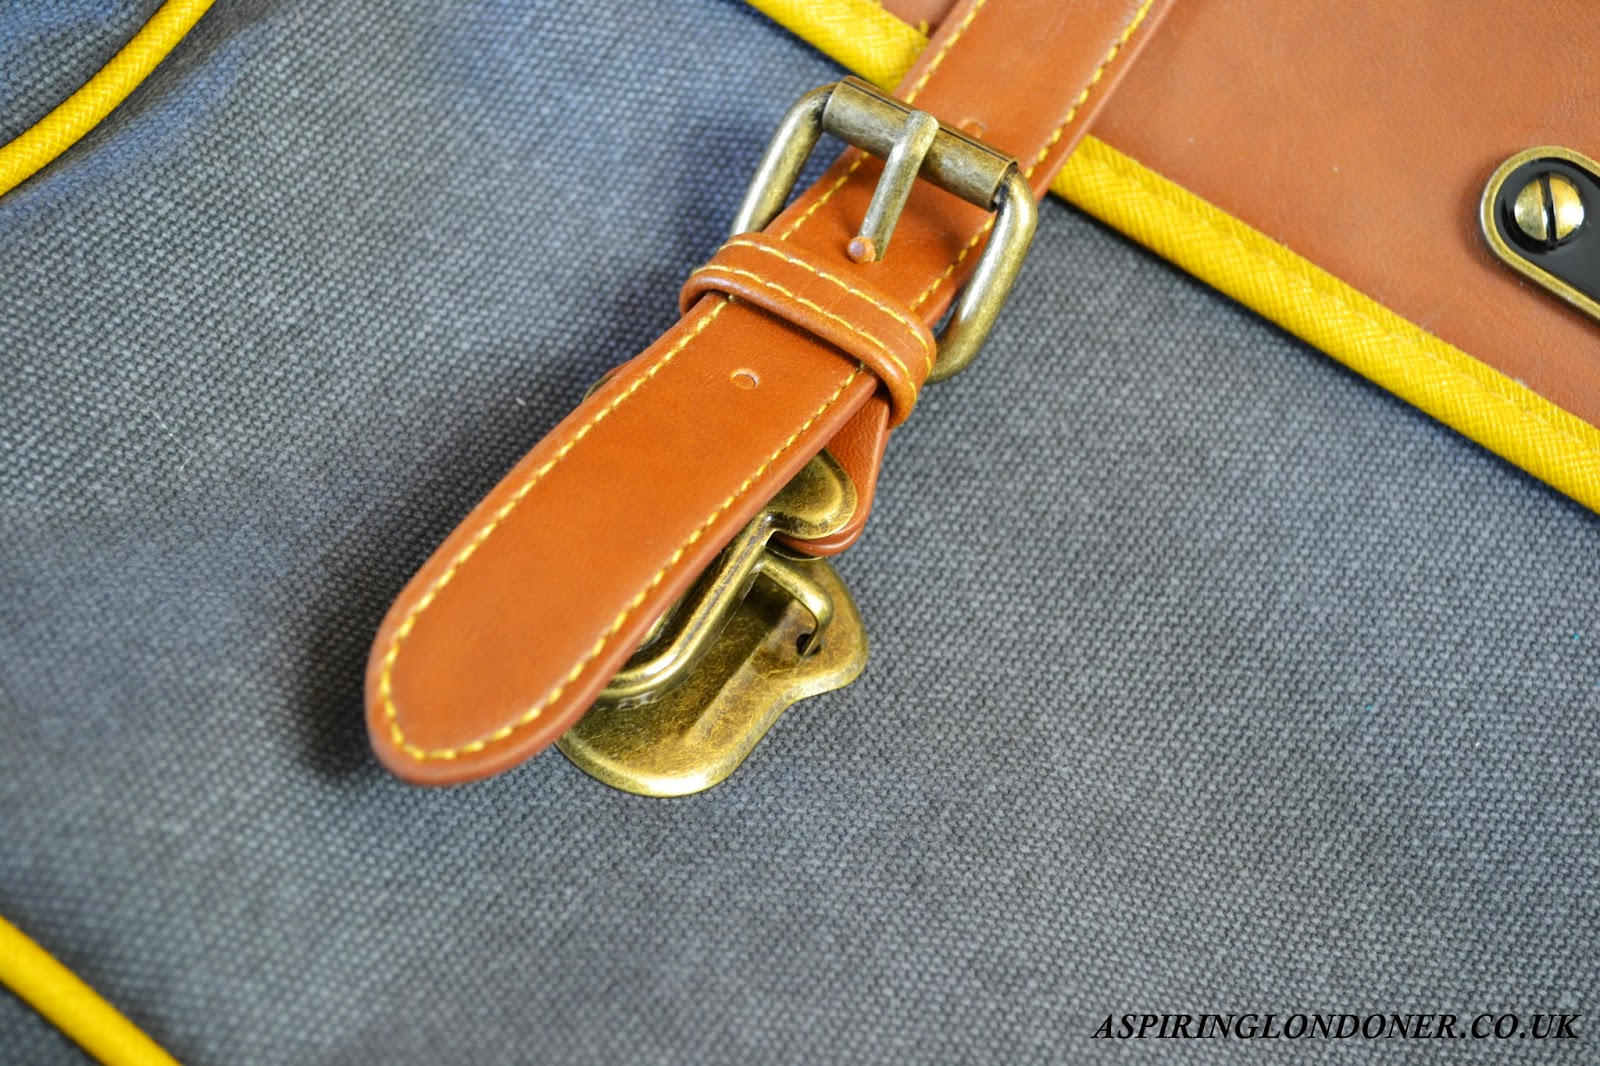 Ted Baker On Course Ted Messenger Bag Review - Aspiring Londoner